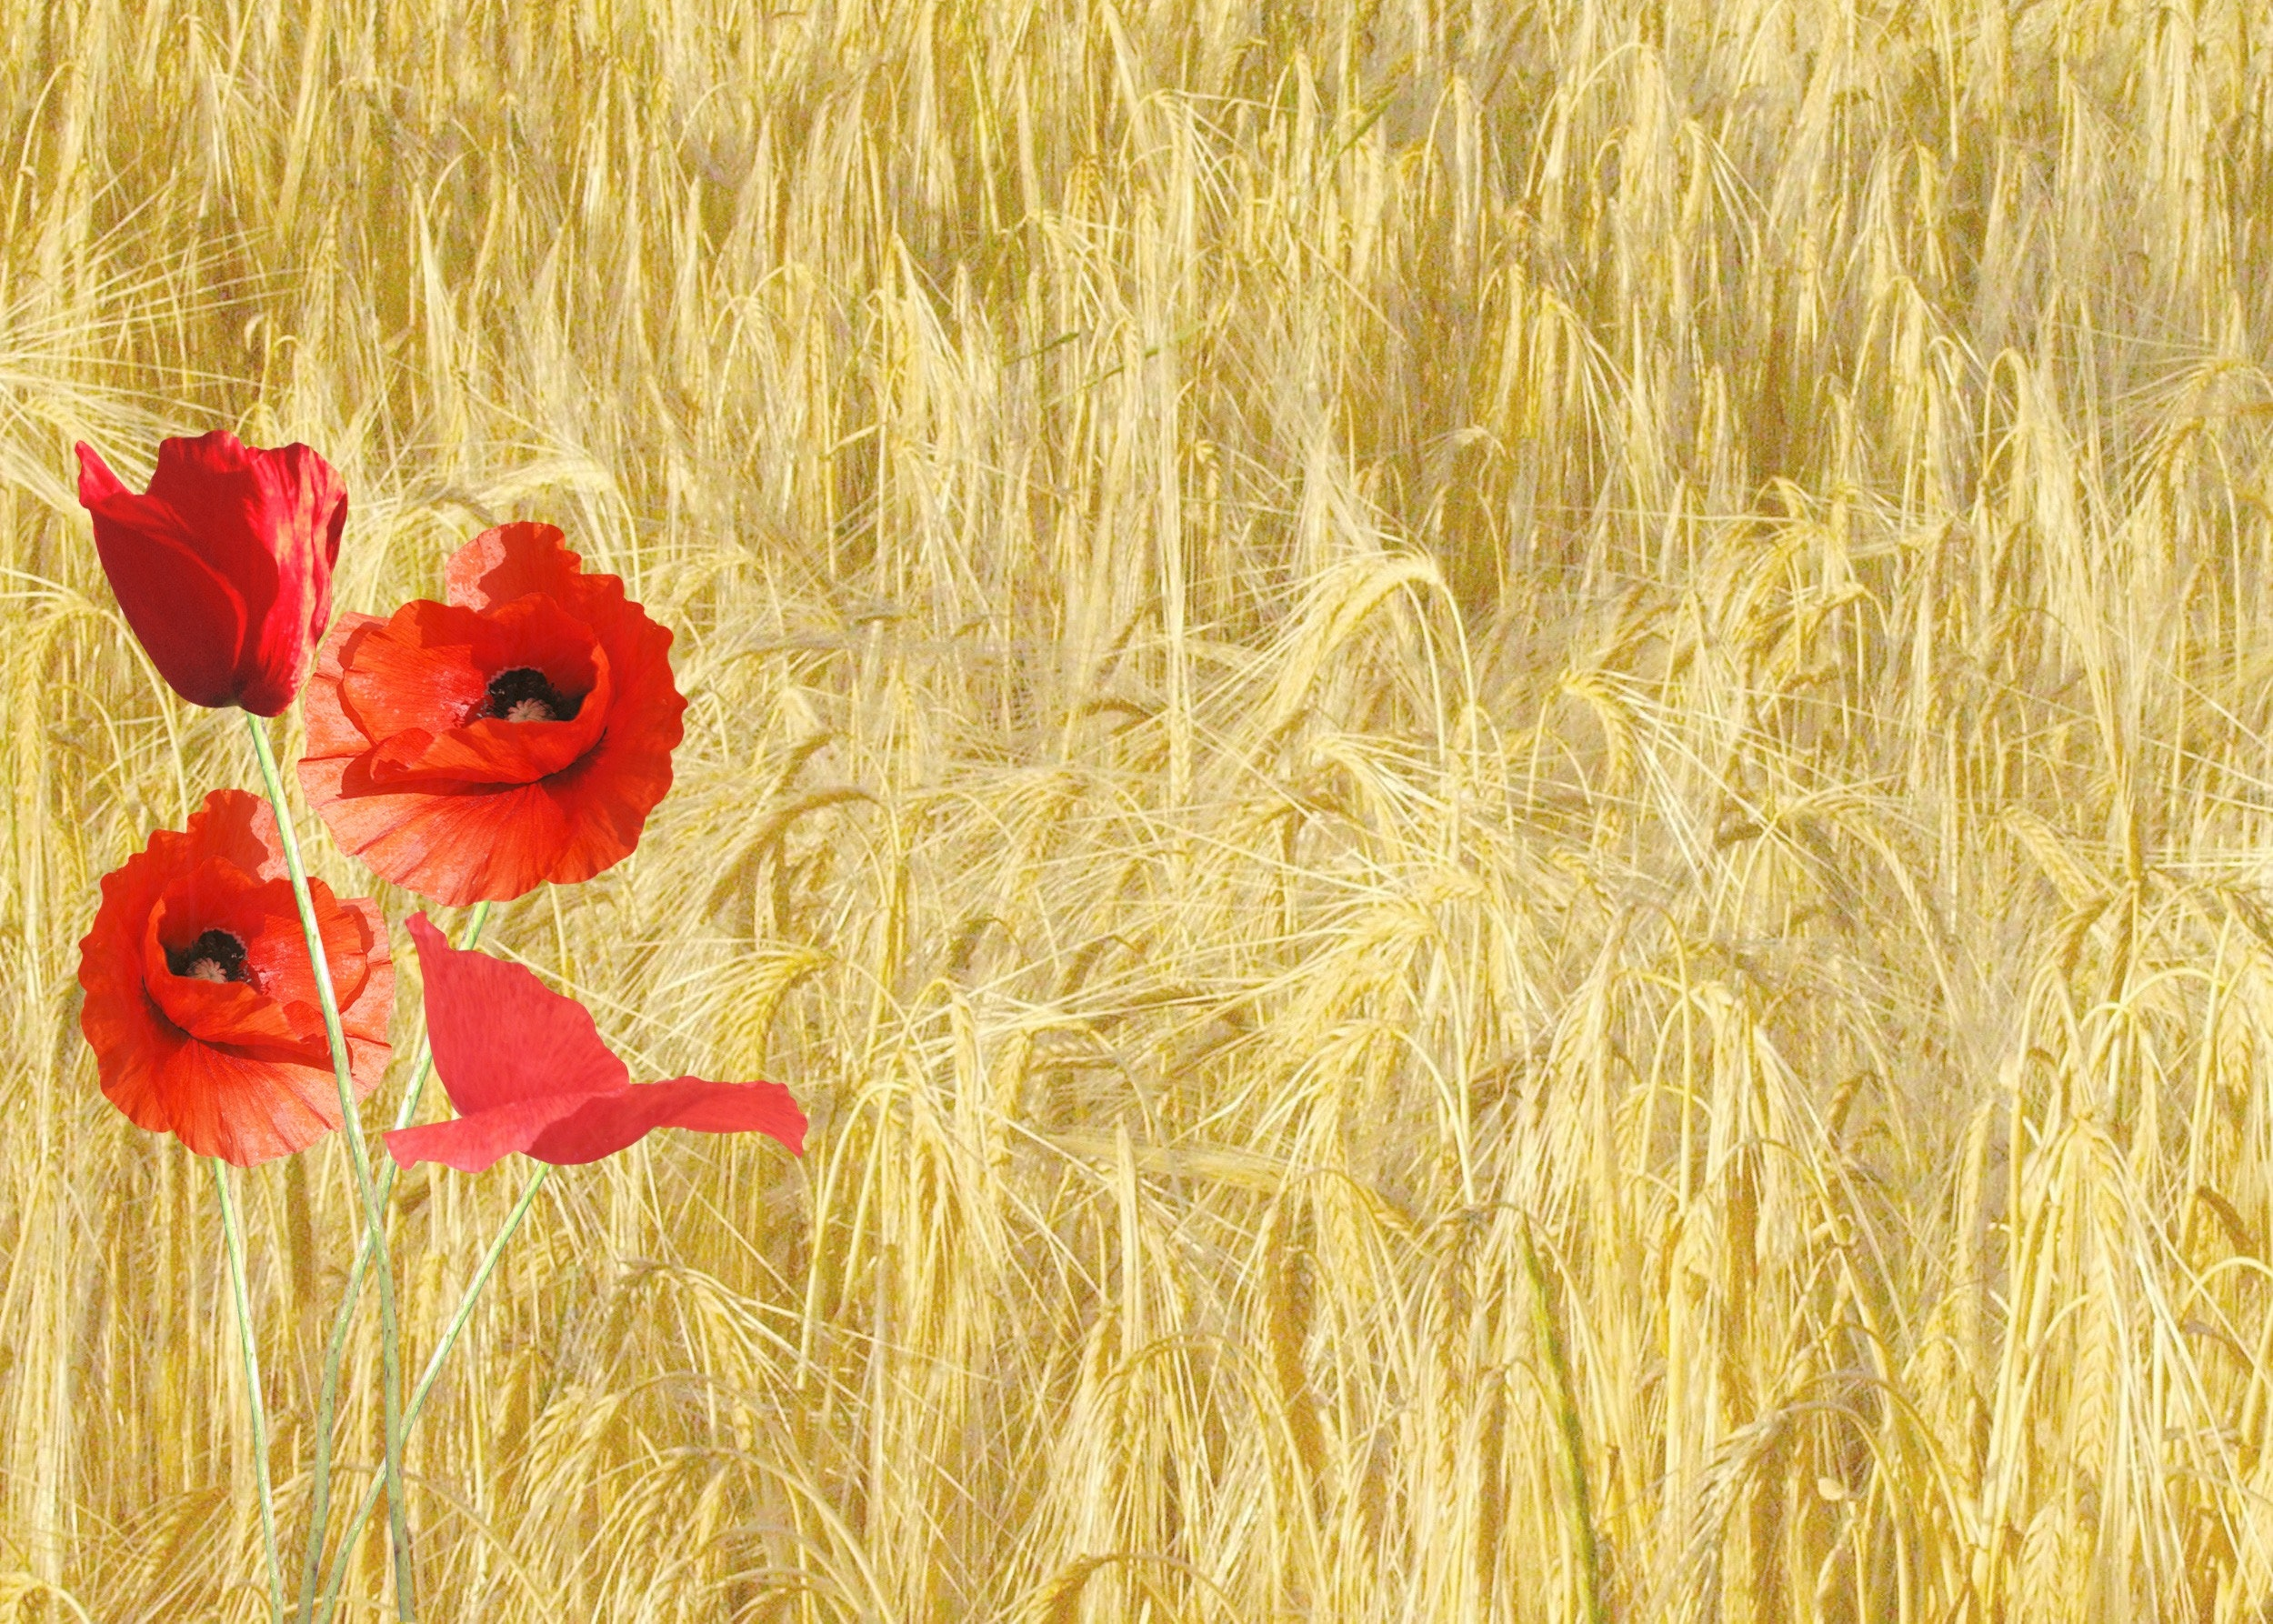 Red petaled flower near yellow grass during daytime photo